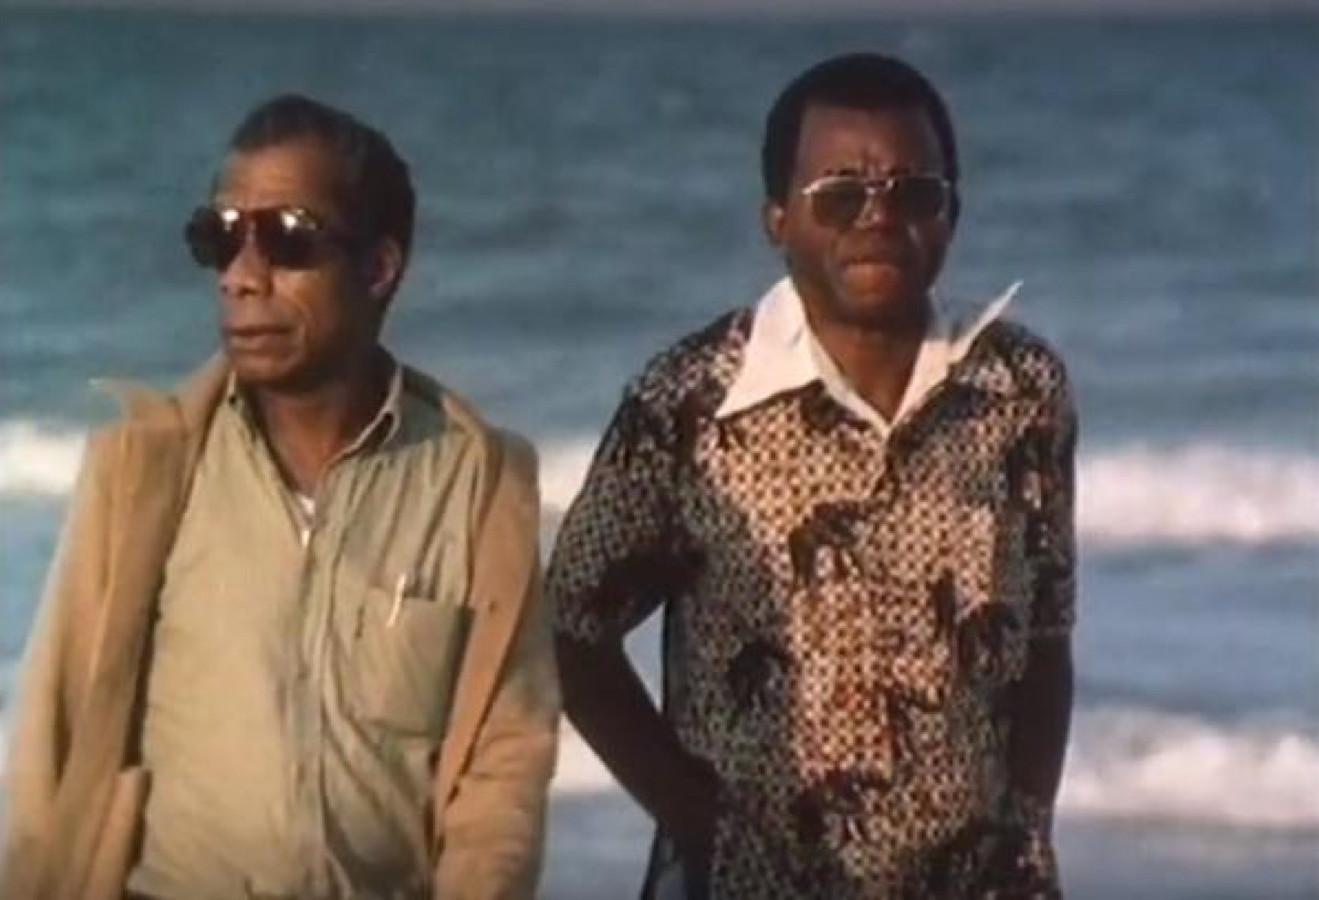 James Baldwin and Chinua Achebe on the beach